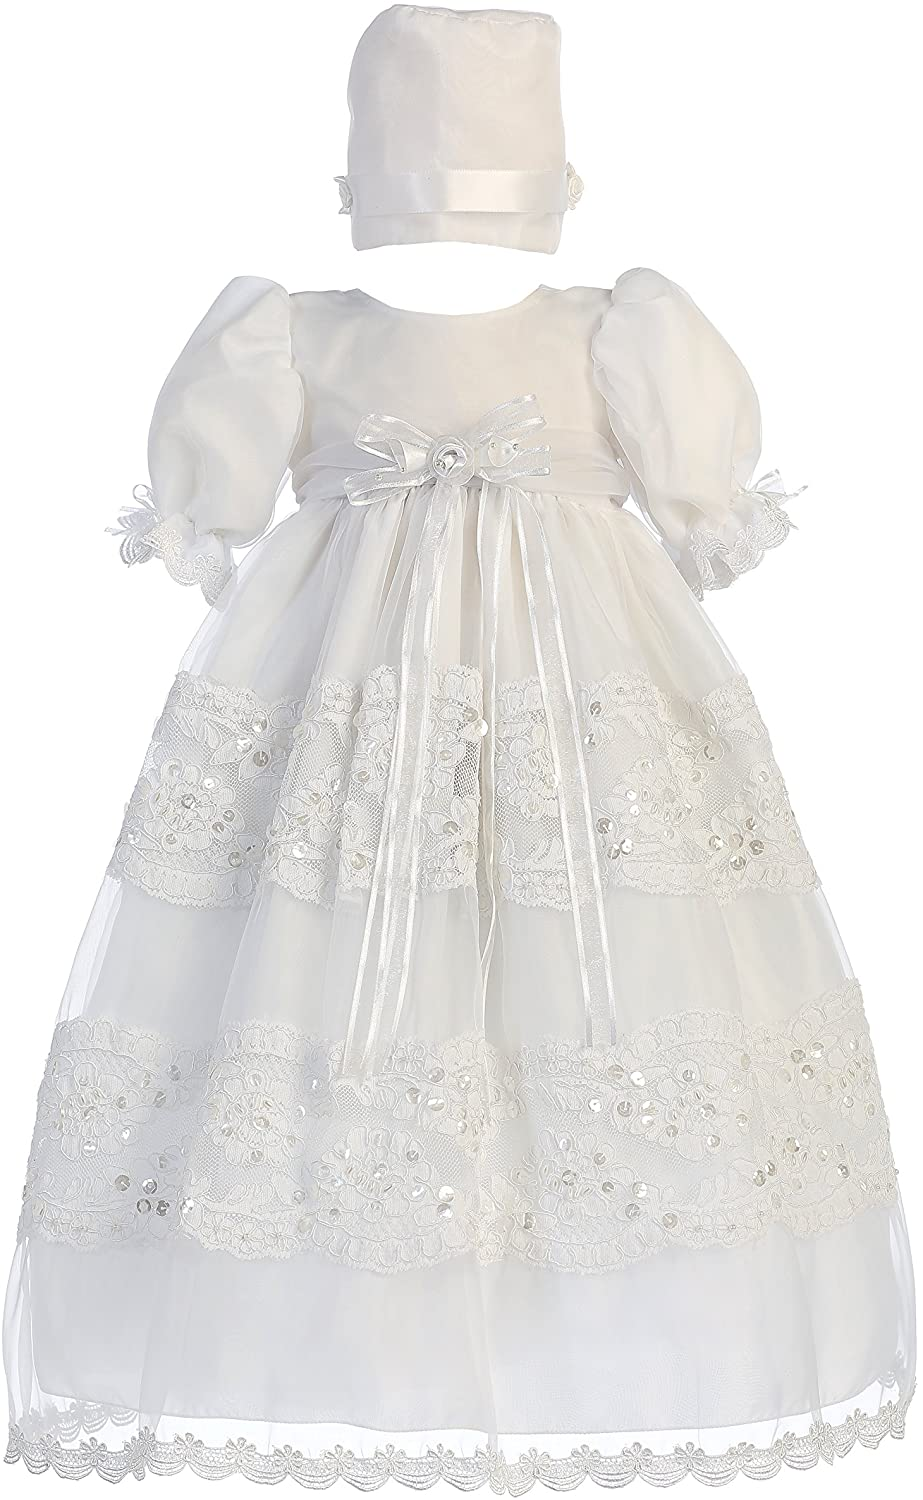 Baby Girl White Organza with Lace Trim Gown Christening Baptism Hat Set